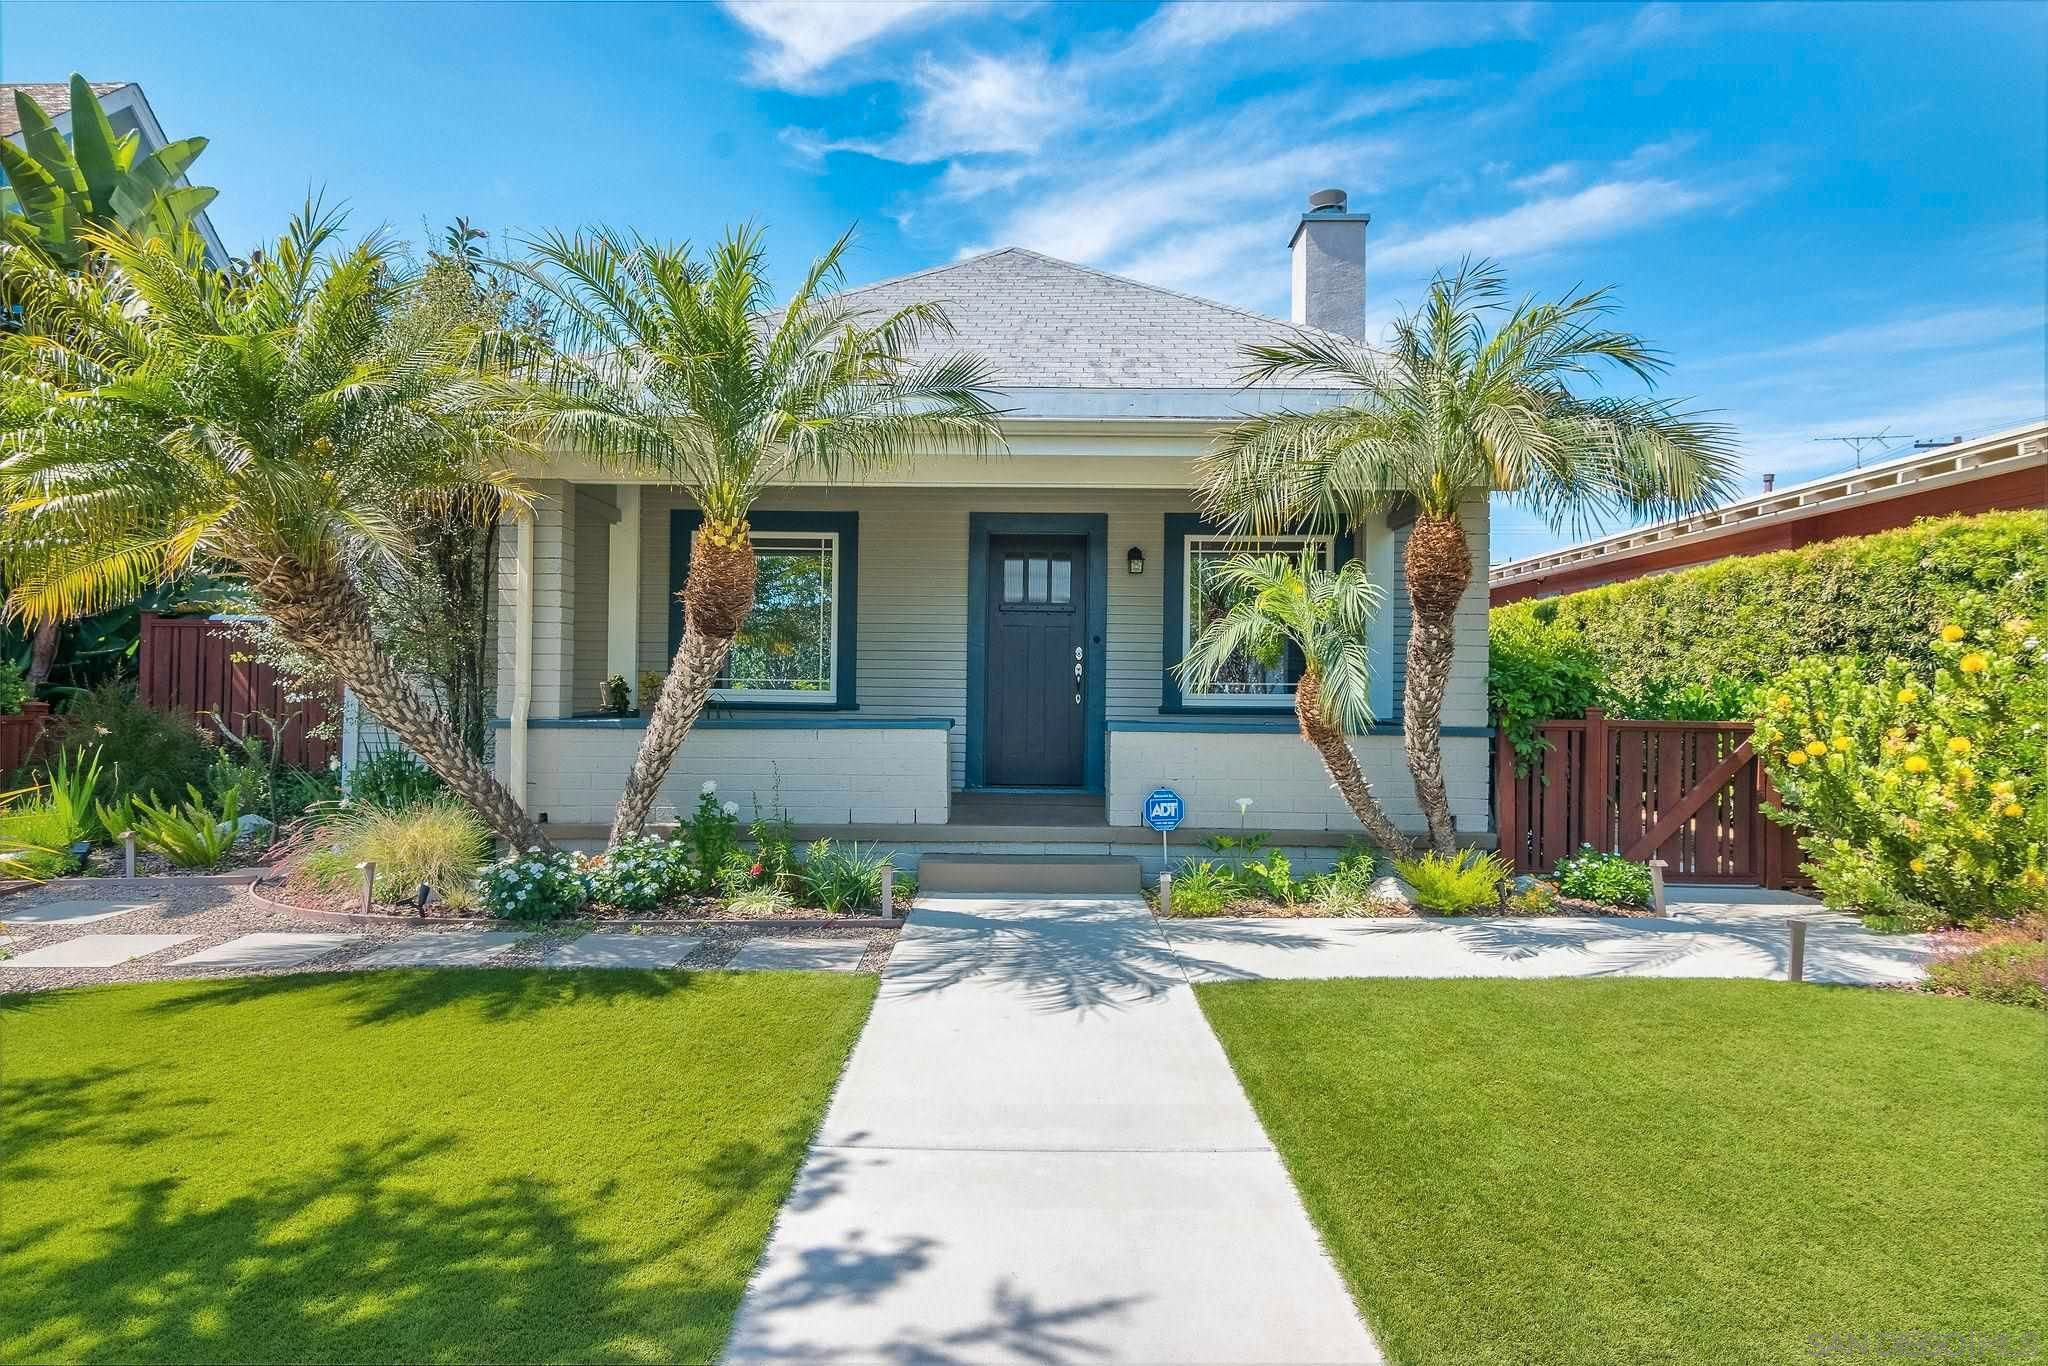 Main Photo: House for sale : 3 bedrooms : 1614 Brookes Ave in San Diego